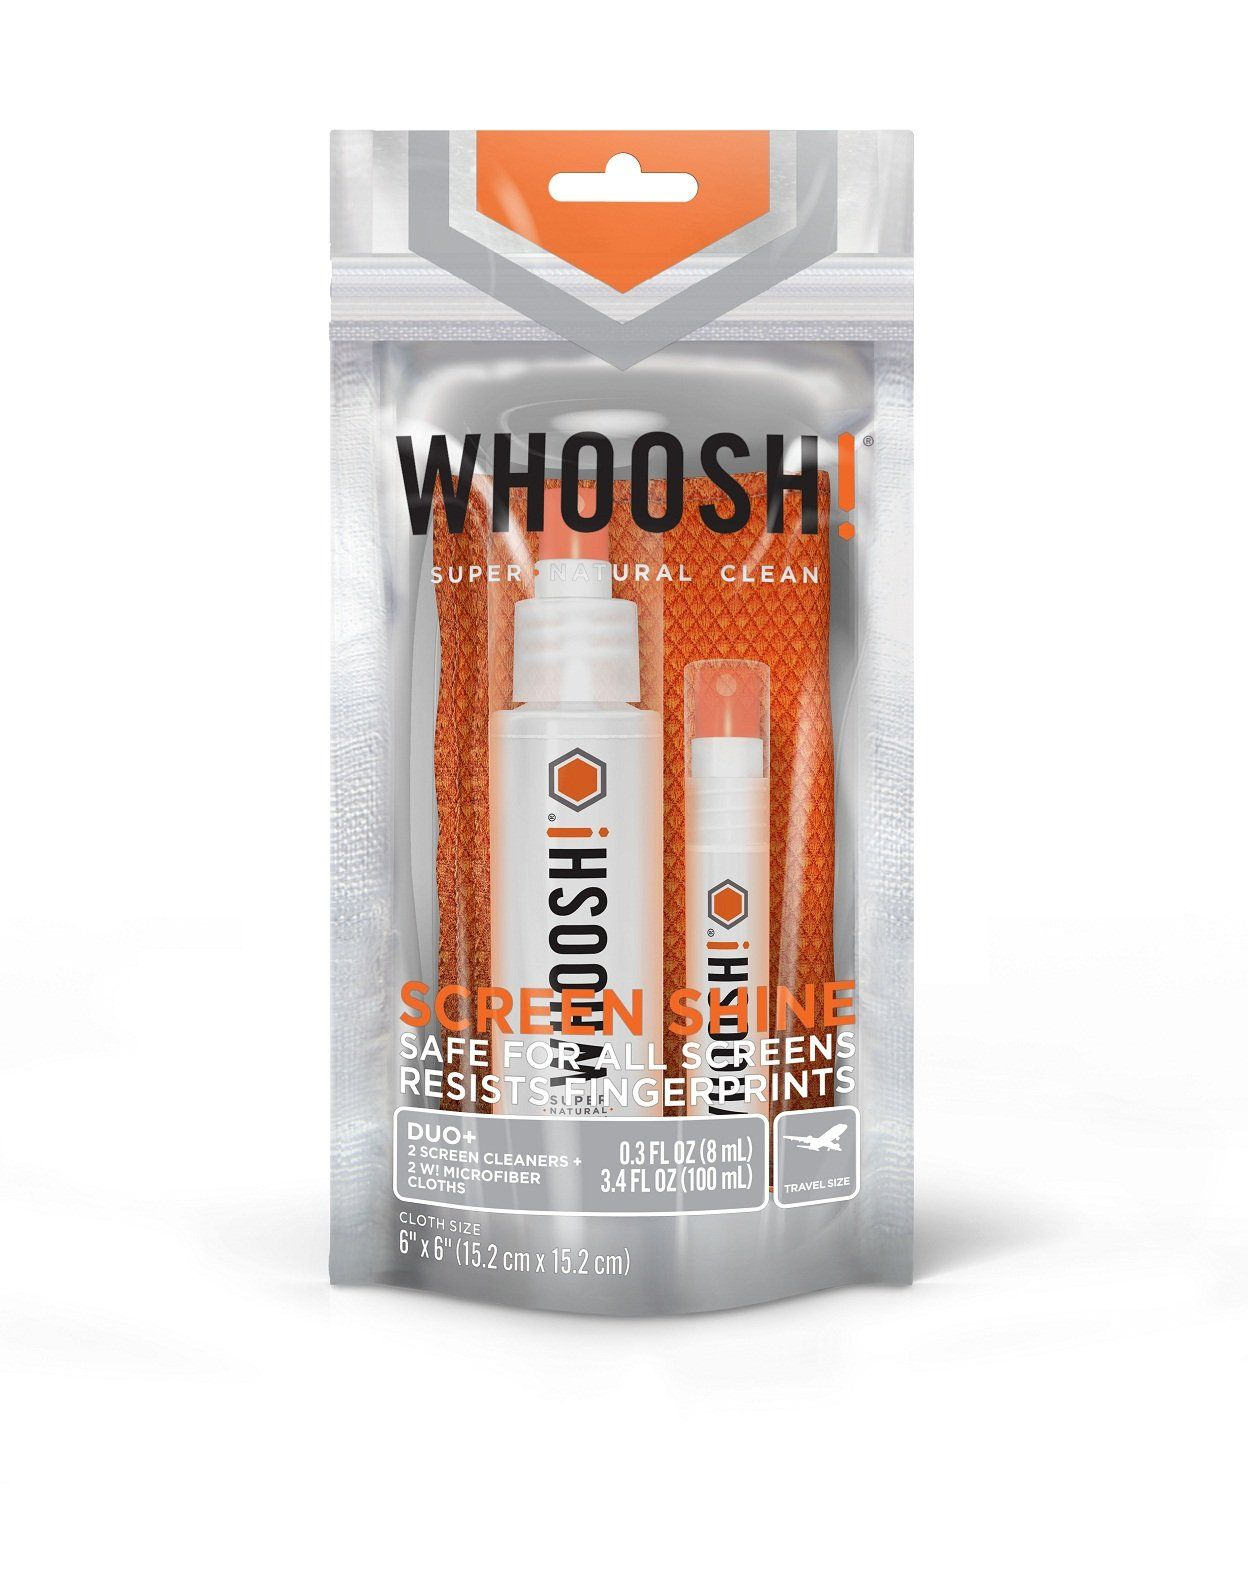 Technewszone.com   Our summary of Woosh Cleaner!